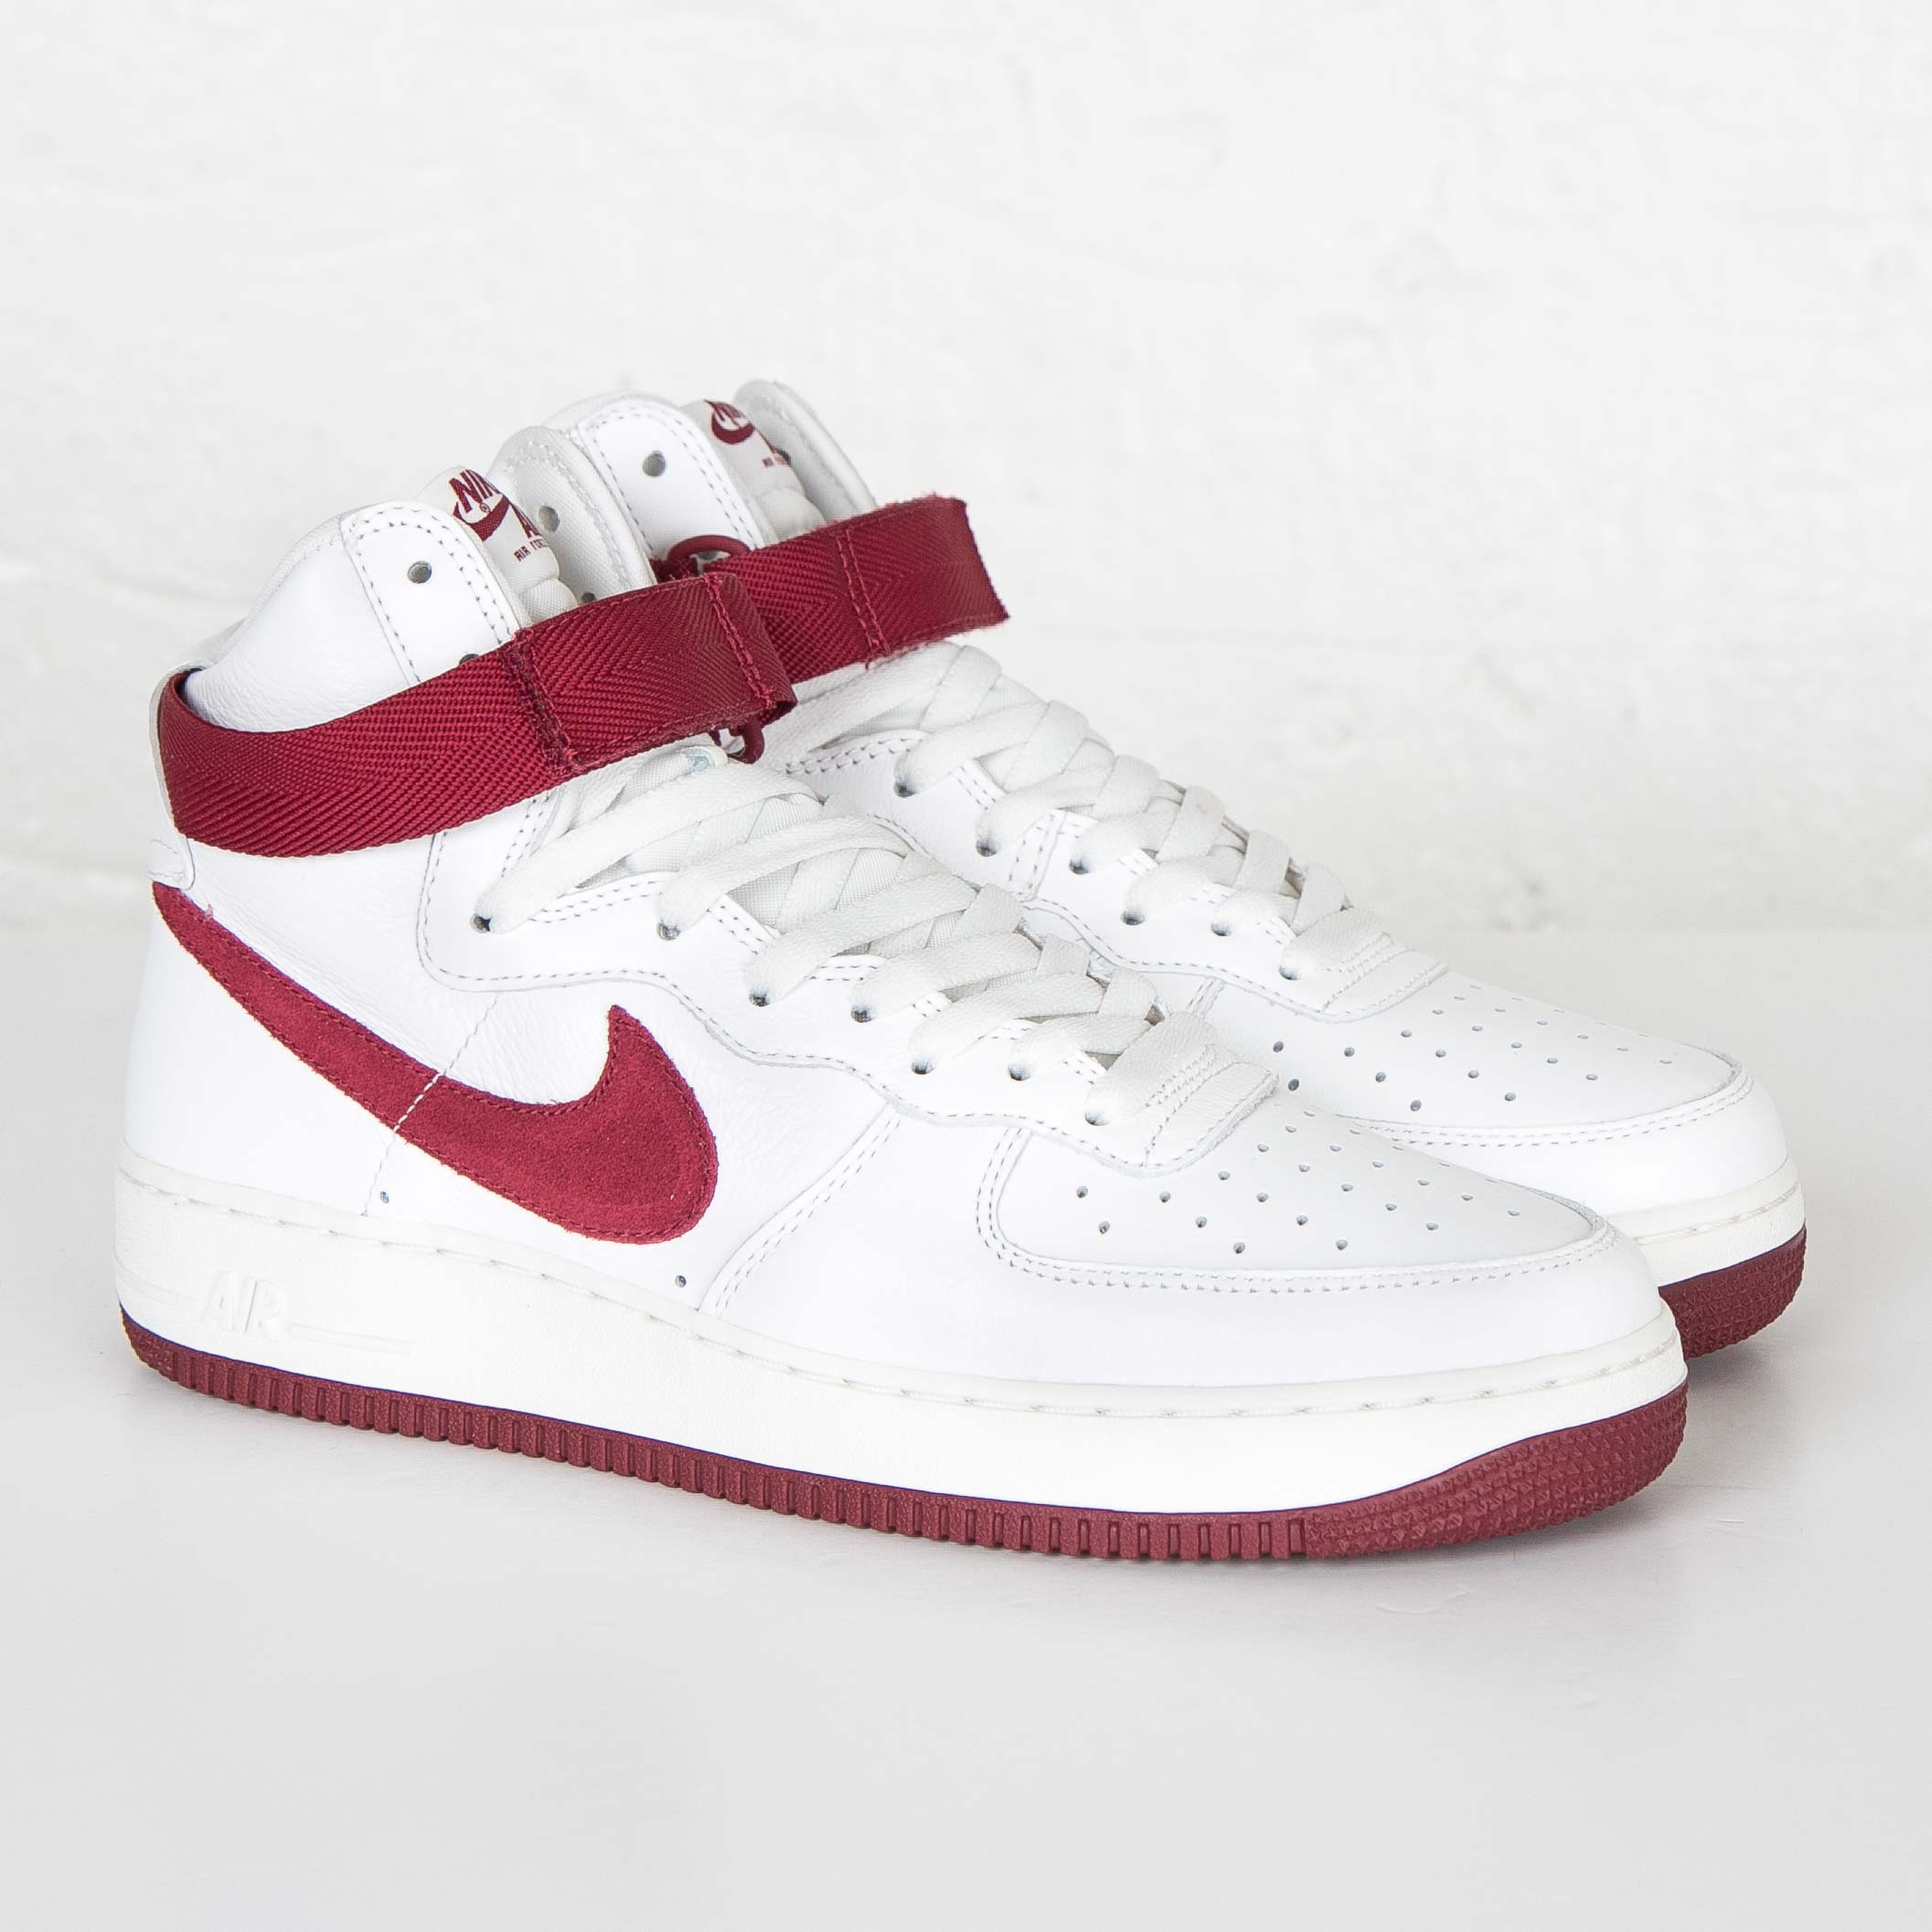 Nike Air Force 1 Hi Retro QS 743546 106 Sneakersnstuff